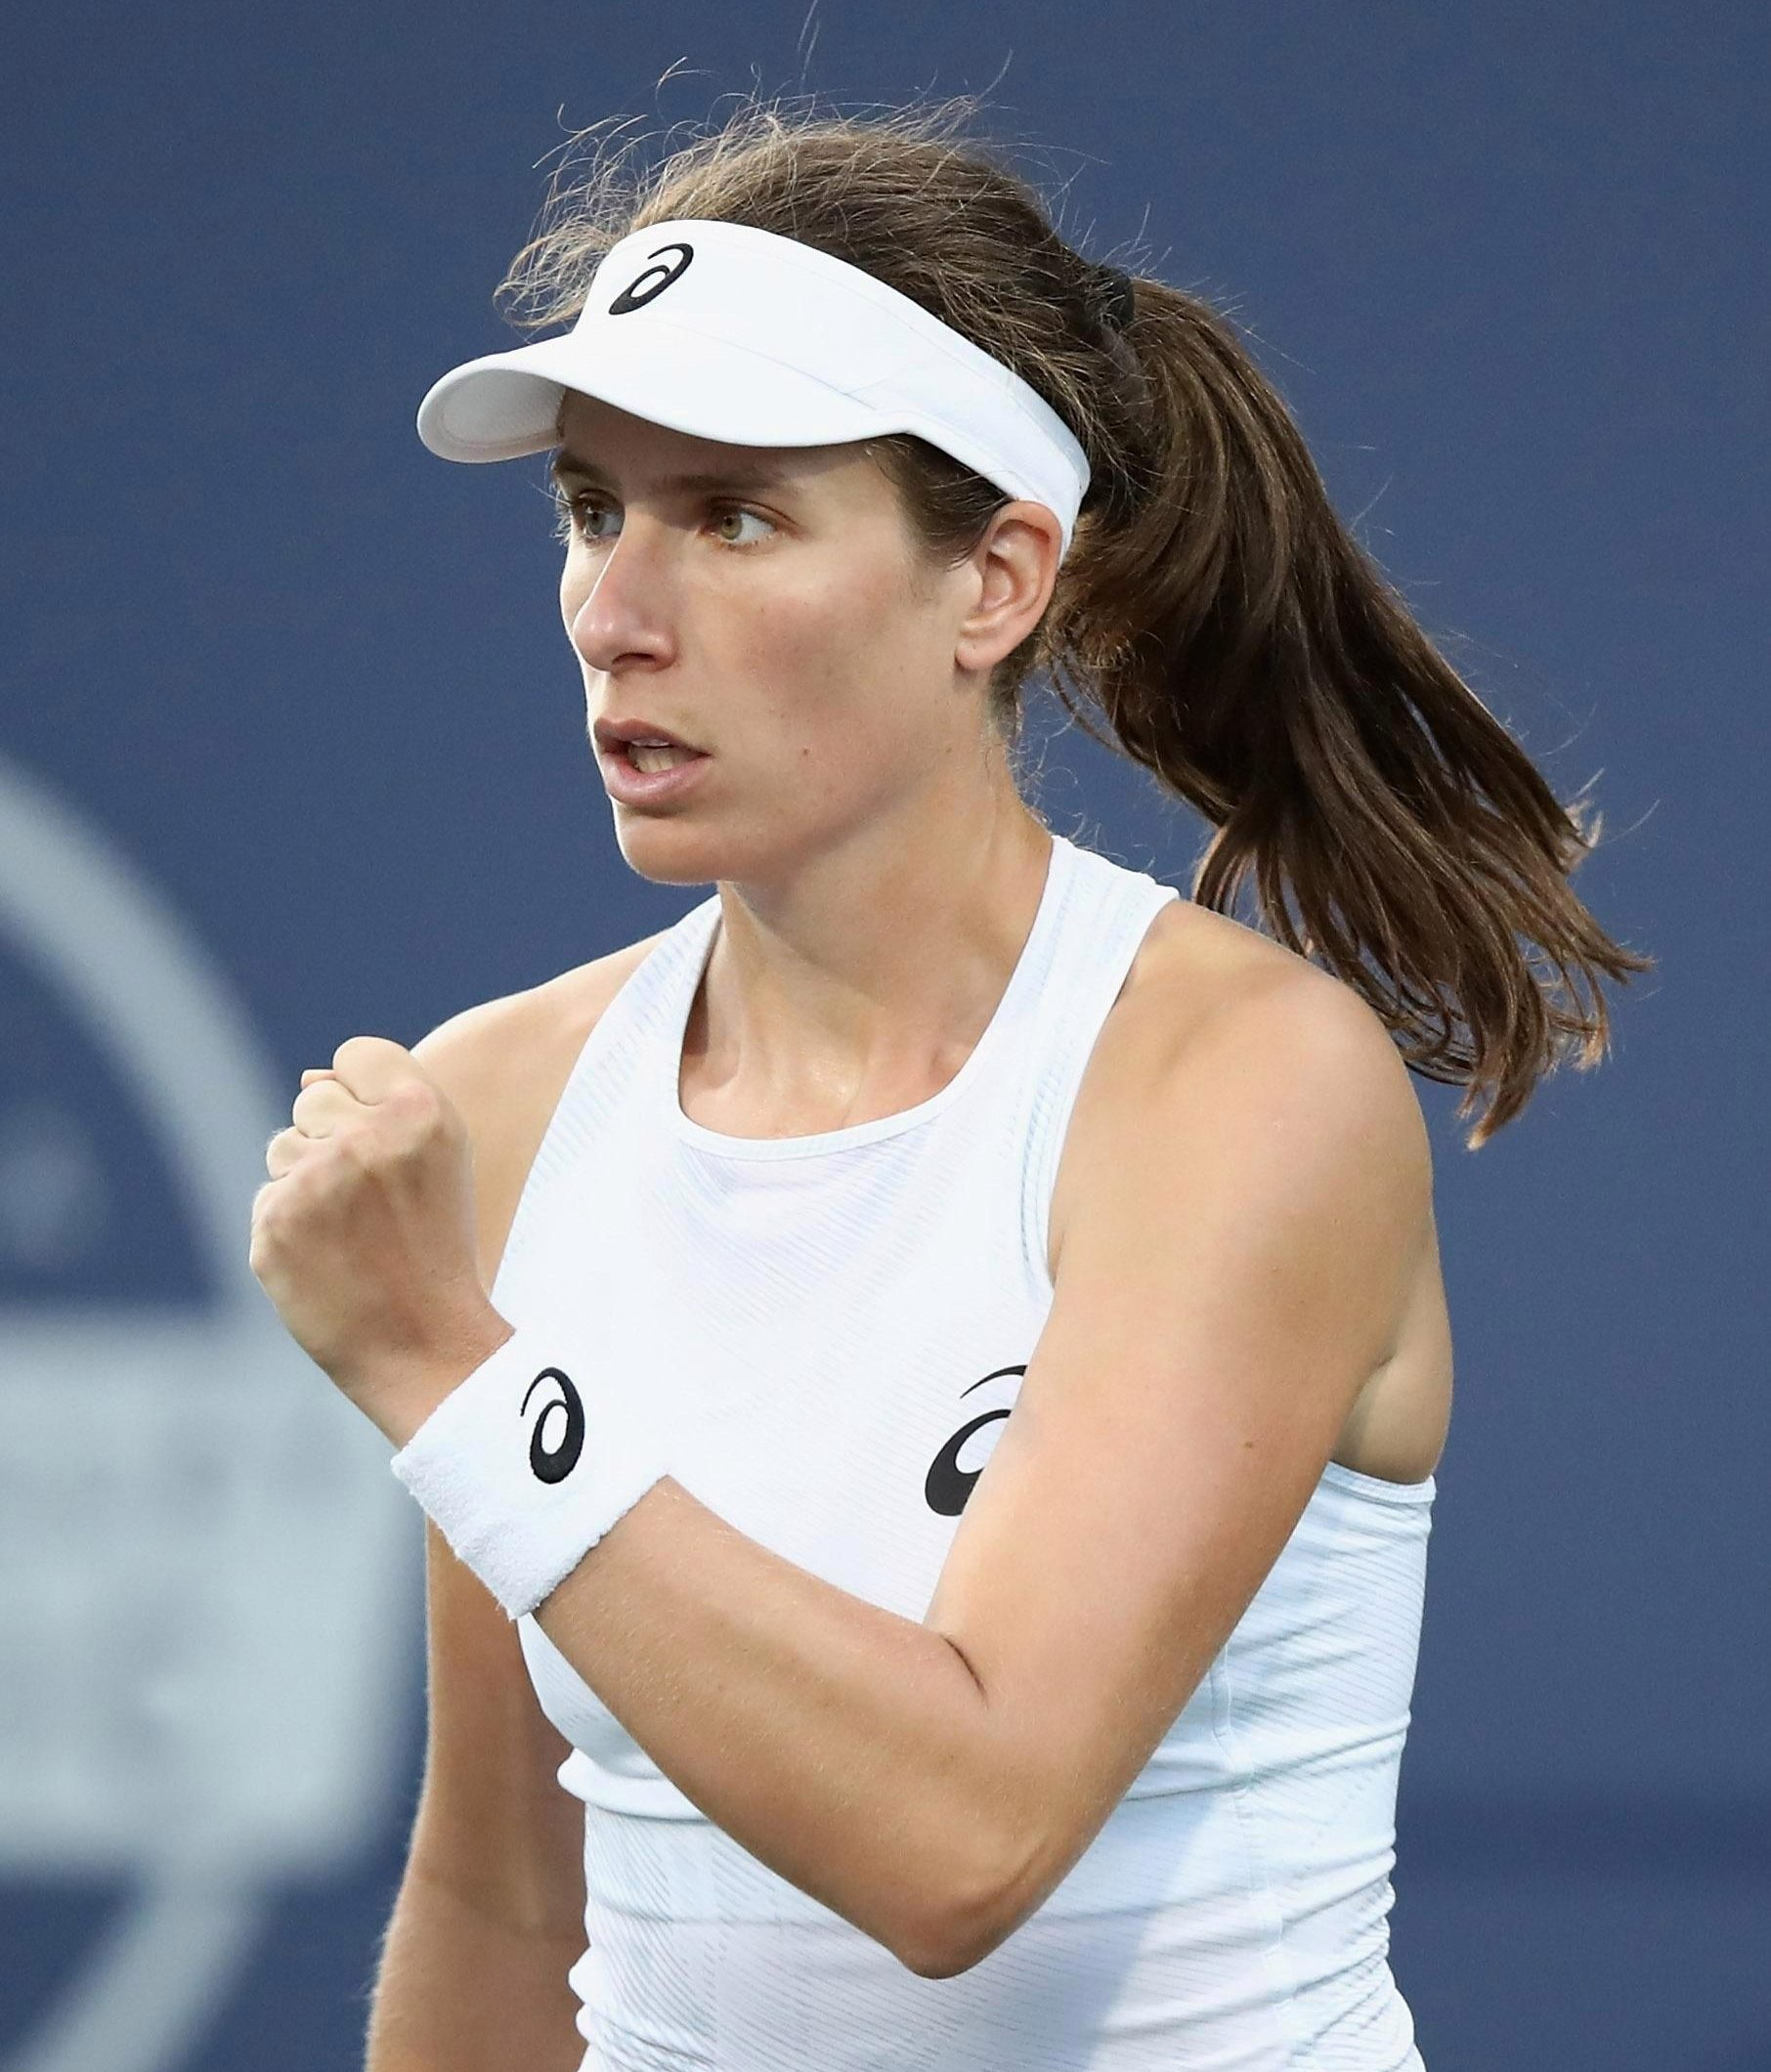 British number one Konta got the job done in 53 minutes